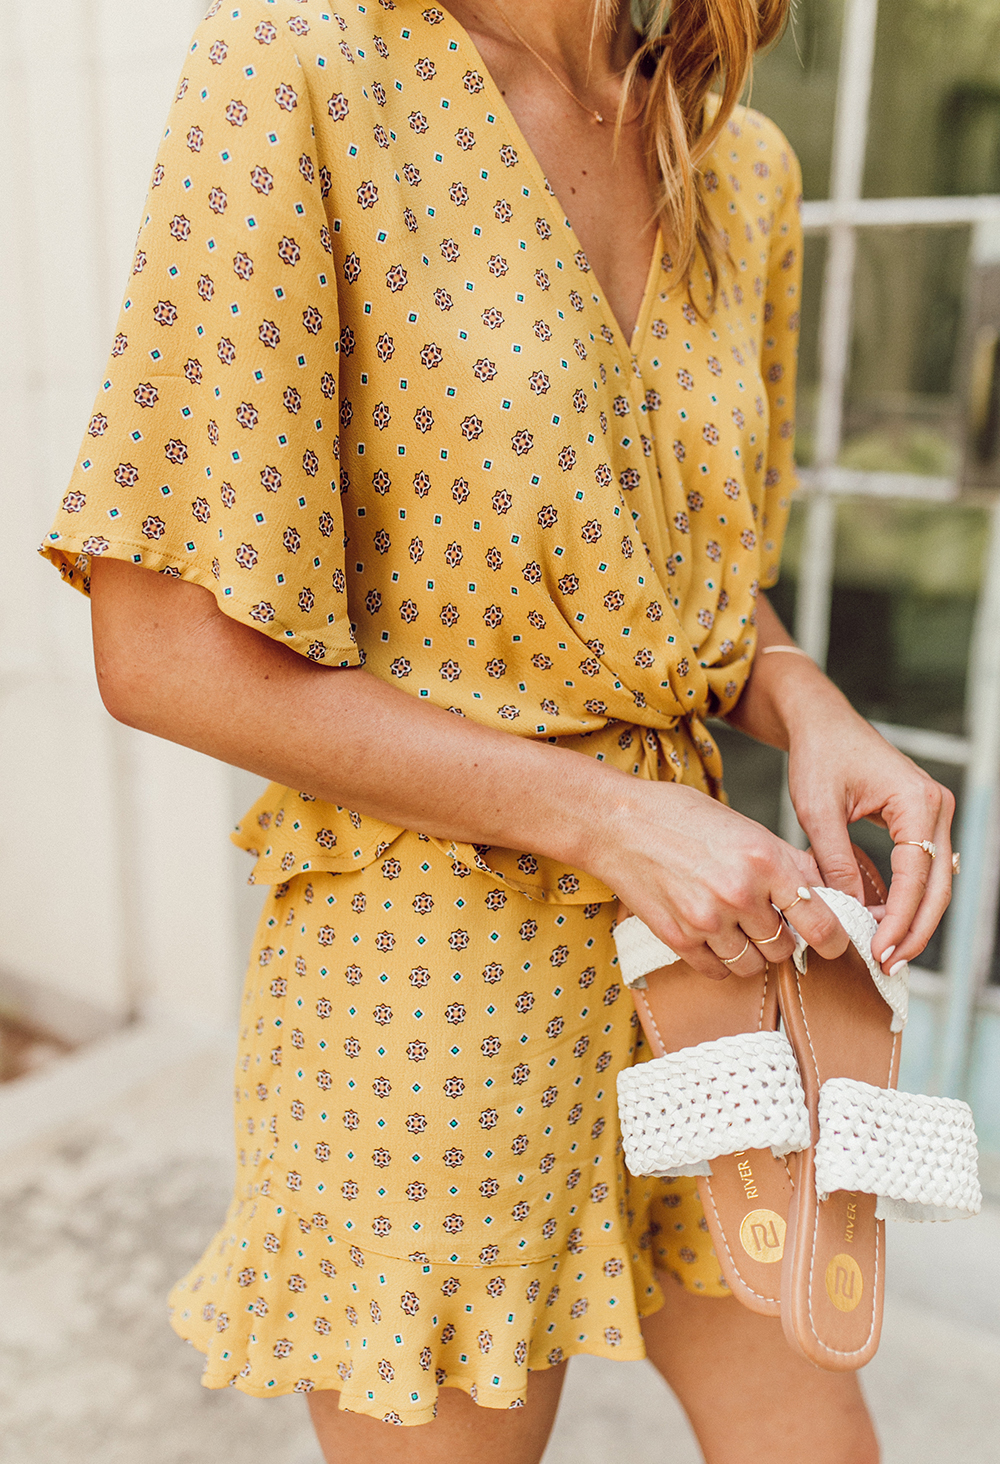 livvyland-blog-olivia-watson-austin-texas-fashion-lifestyle-blogger-river-island-floral-print-yellow-knot-front-romper-summer-occasion-outfit-idea-3